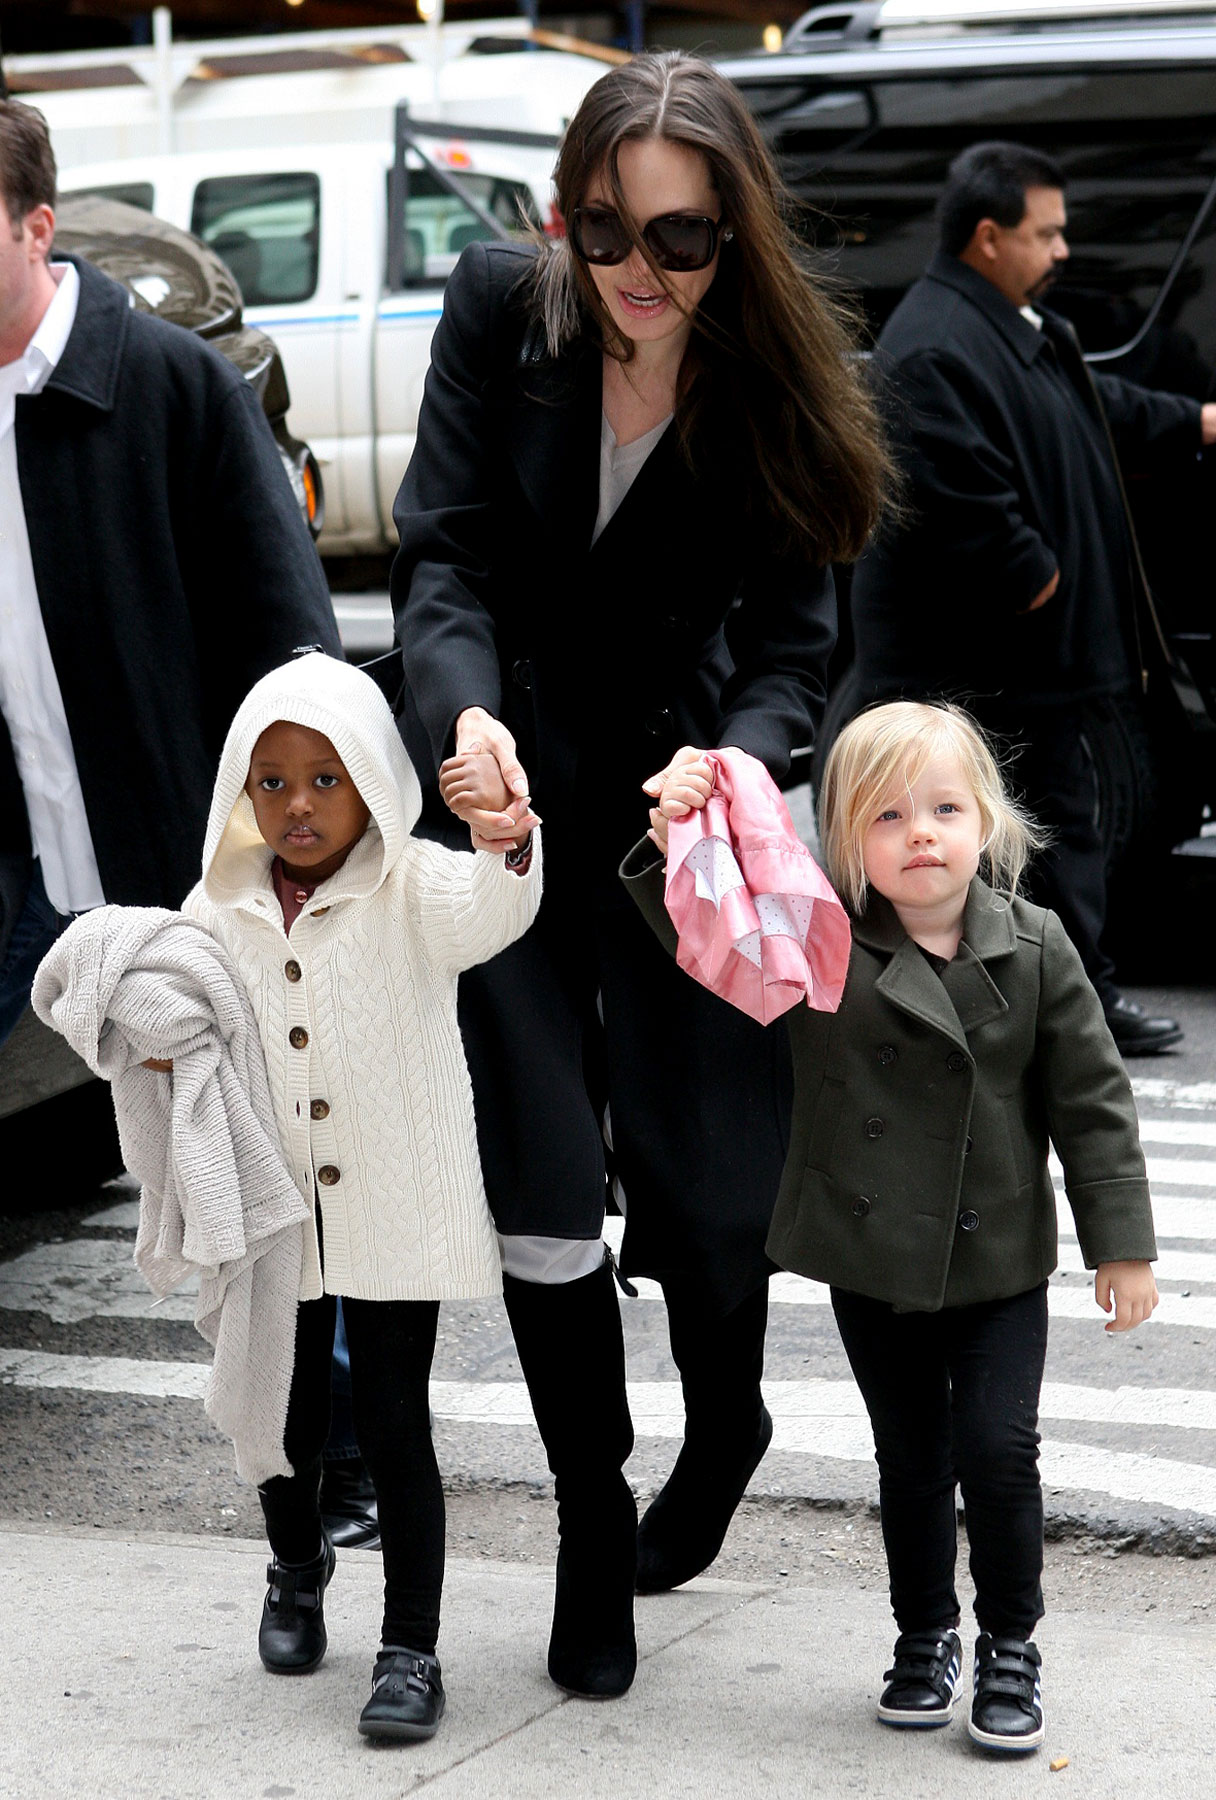 Angelina Jolie and Family: Moving to NYC?